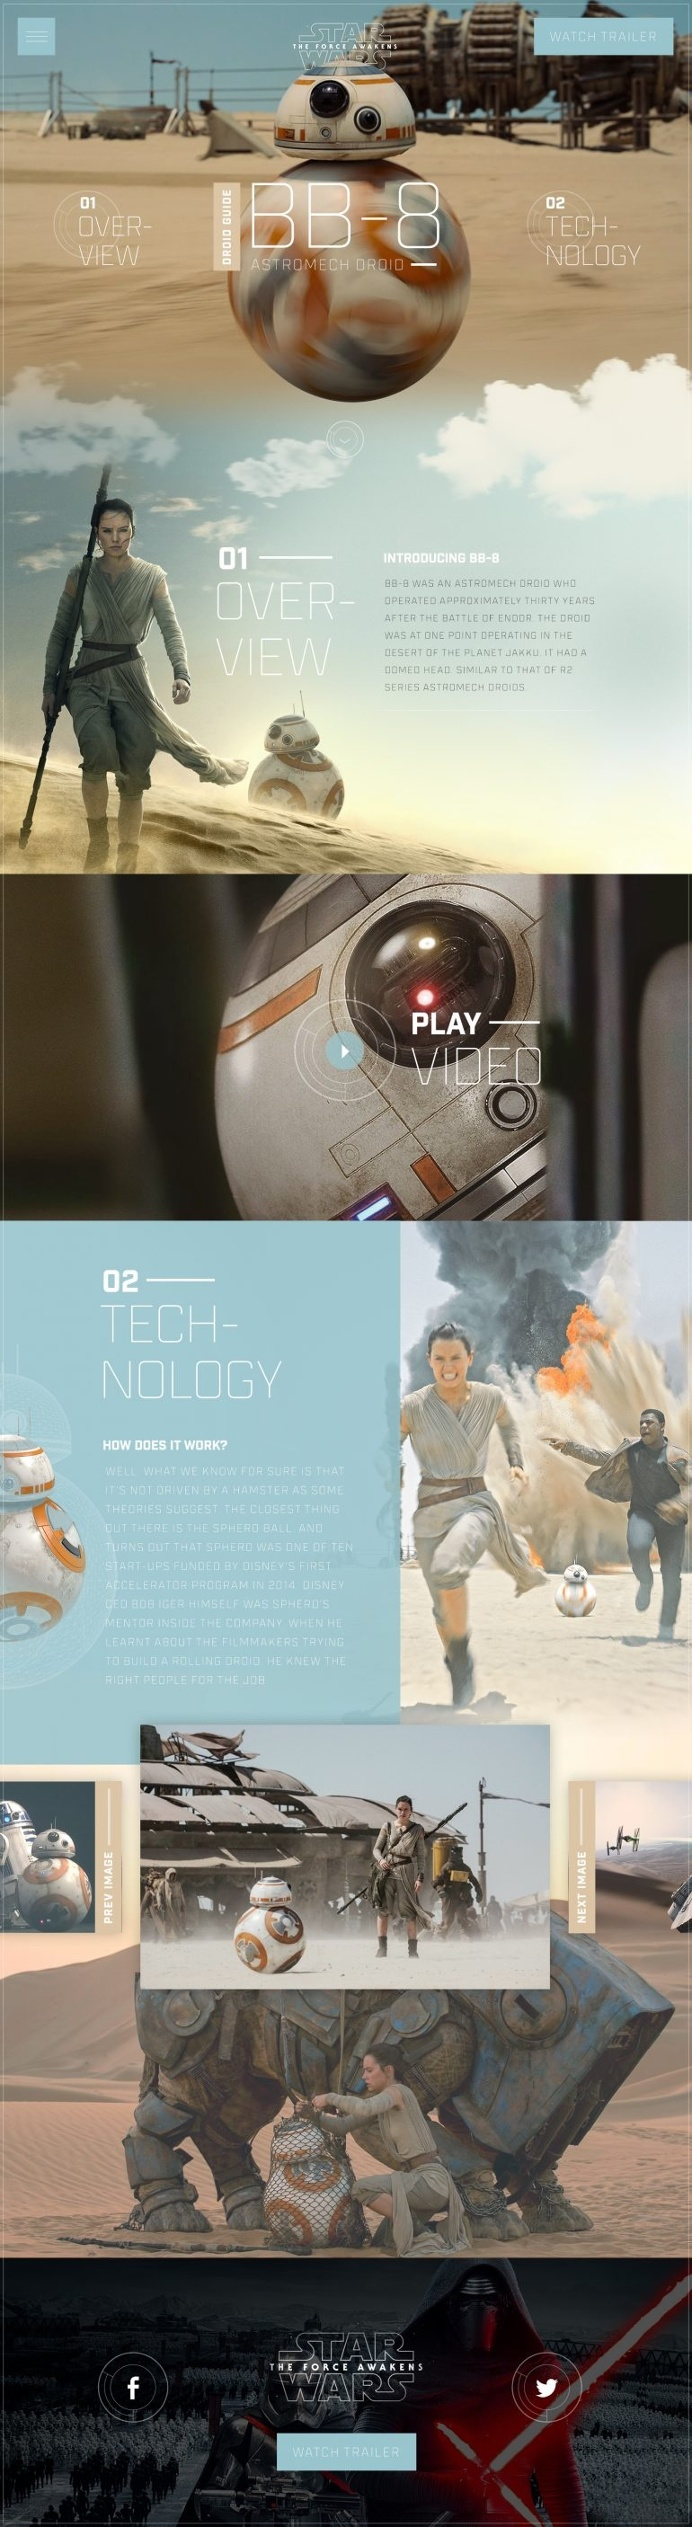 Star Wars BB-8 Droid Guide